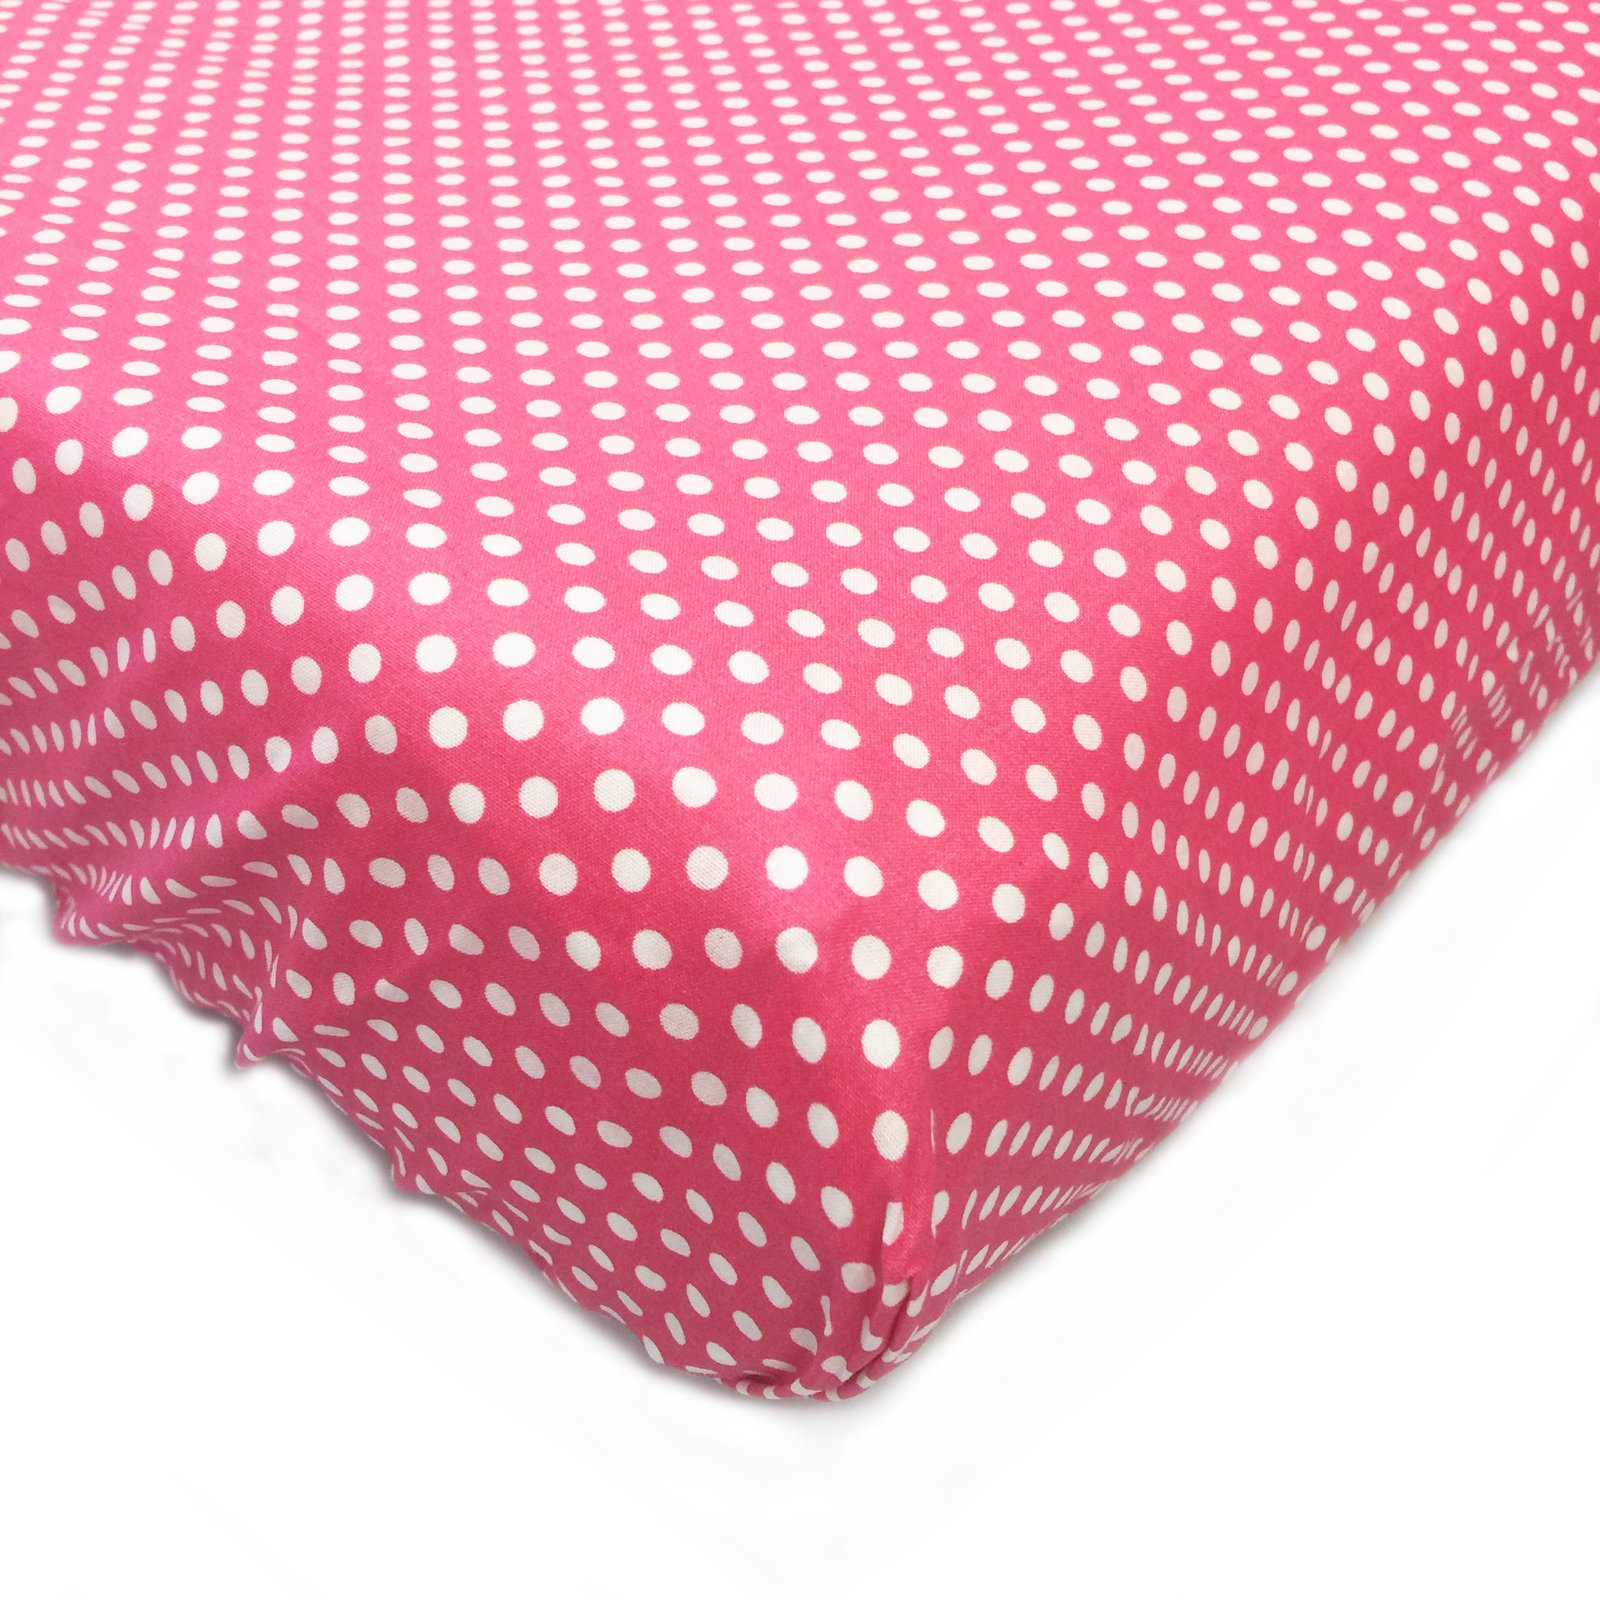 One Grace Place Simplicity Hot Pink Changing Pad Cover